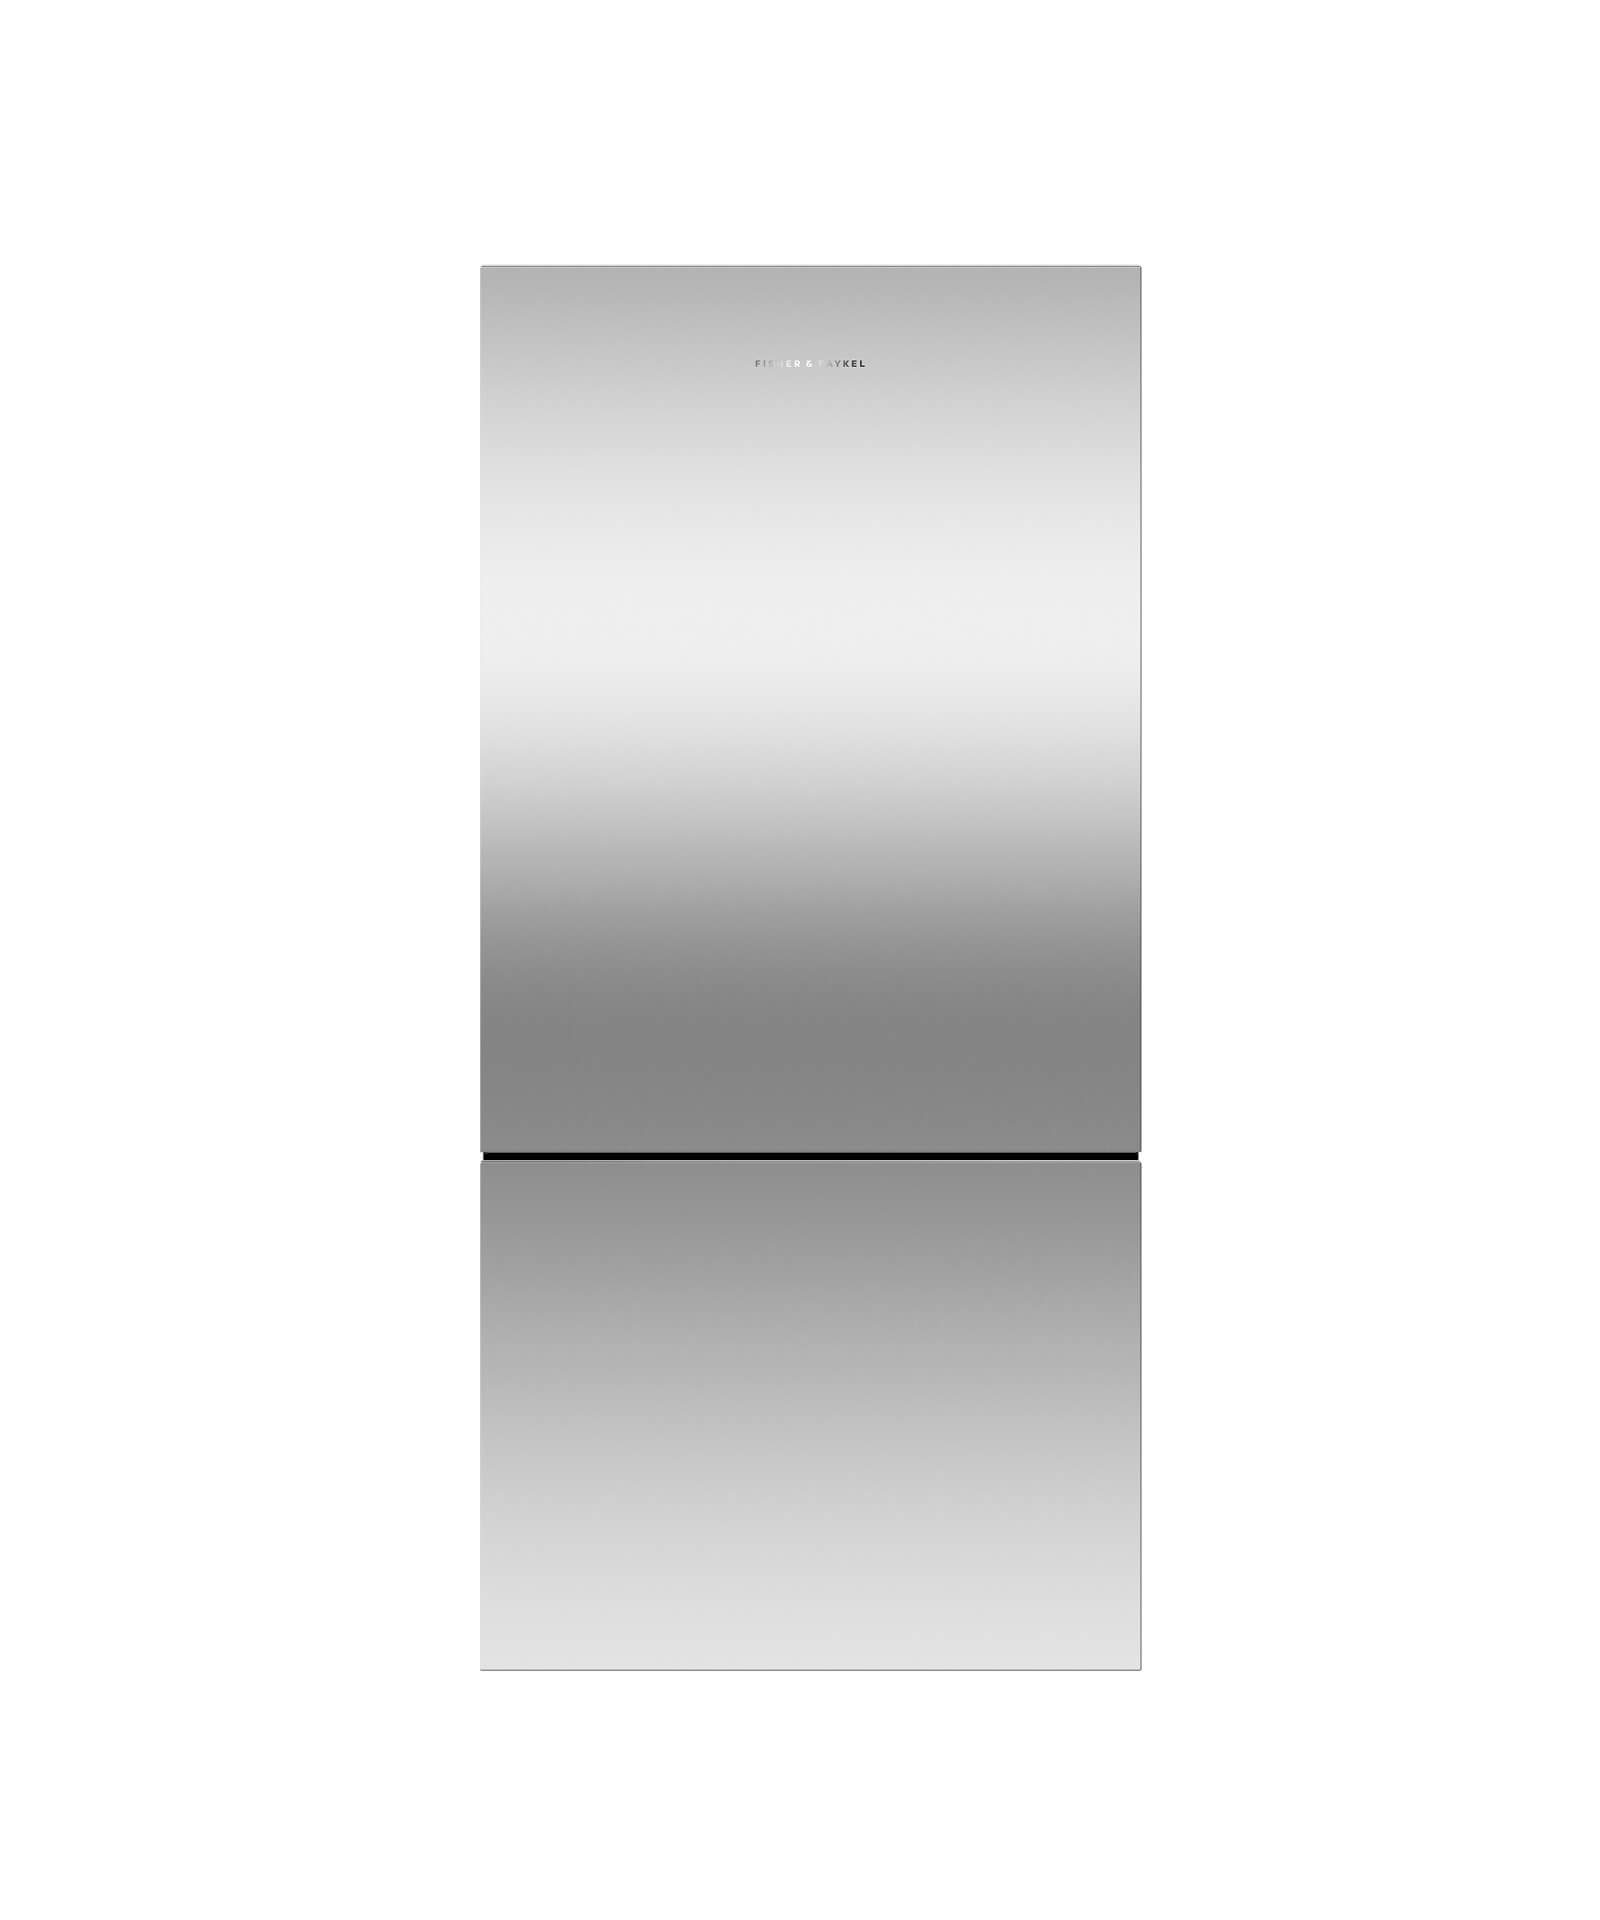 RF170BRPX6 - ActiveSmart™ Fridge - 17.5 cu. ft. counter depth bottom freezer - 24532